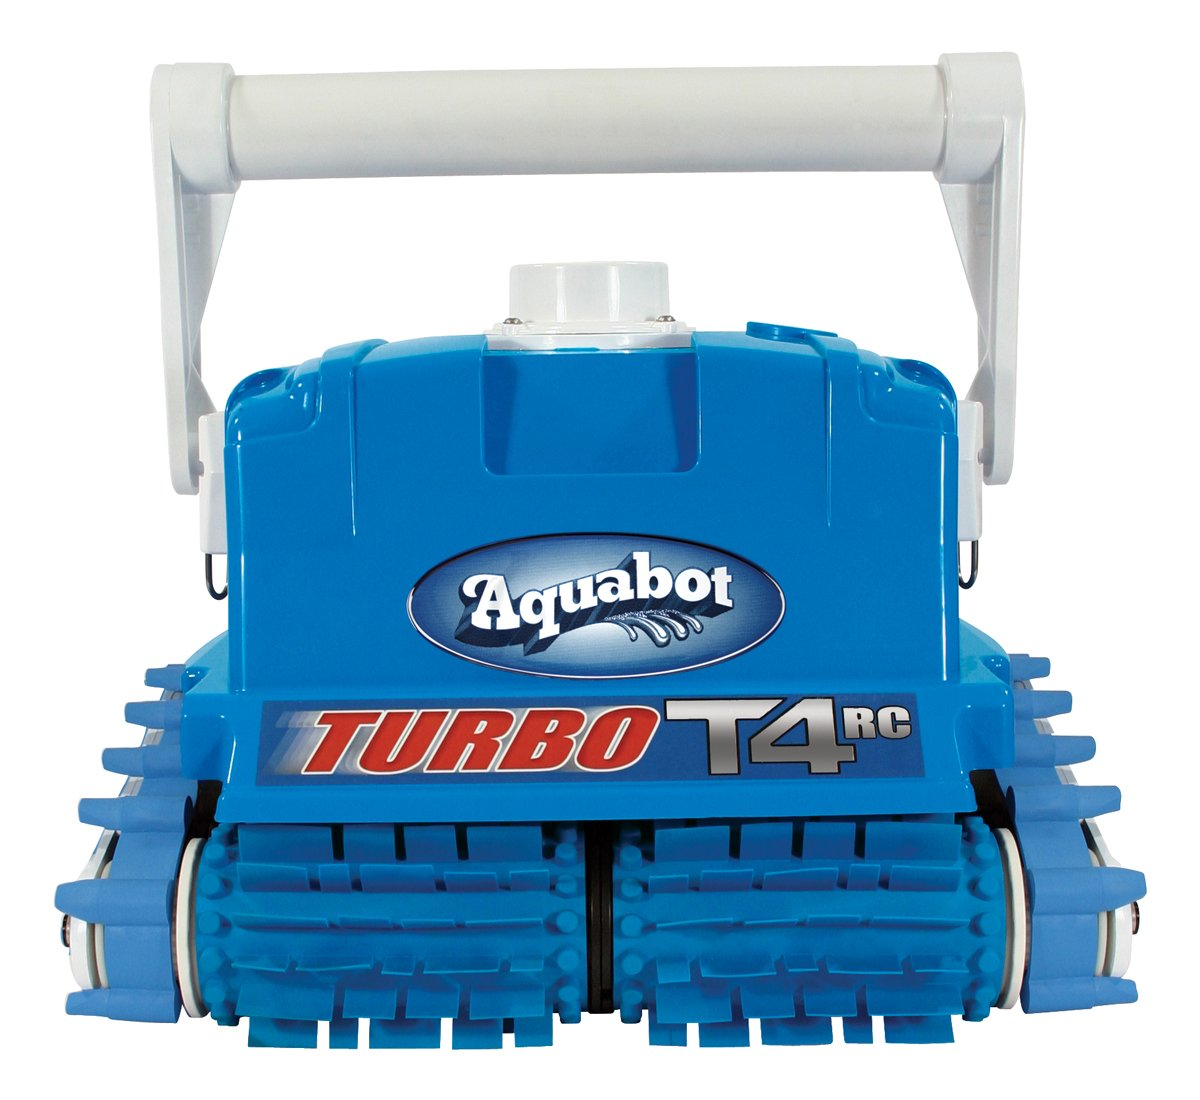 Aquabot Turbo T4RC Robotic In-ground Pool Cleaner with Remote Control Aqua Products Inc. ABTURT4